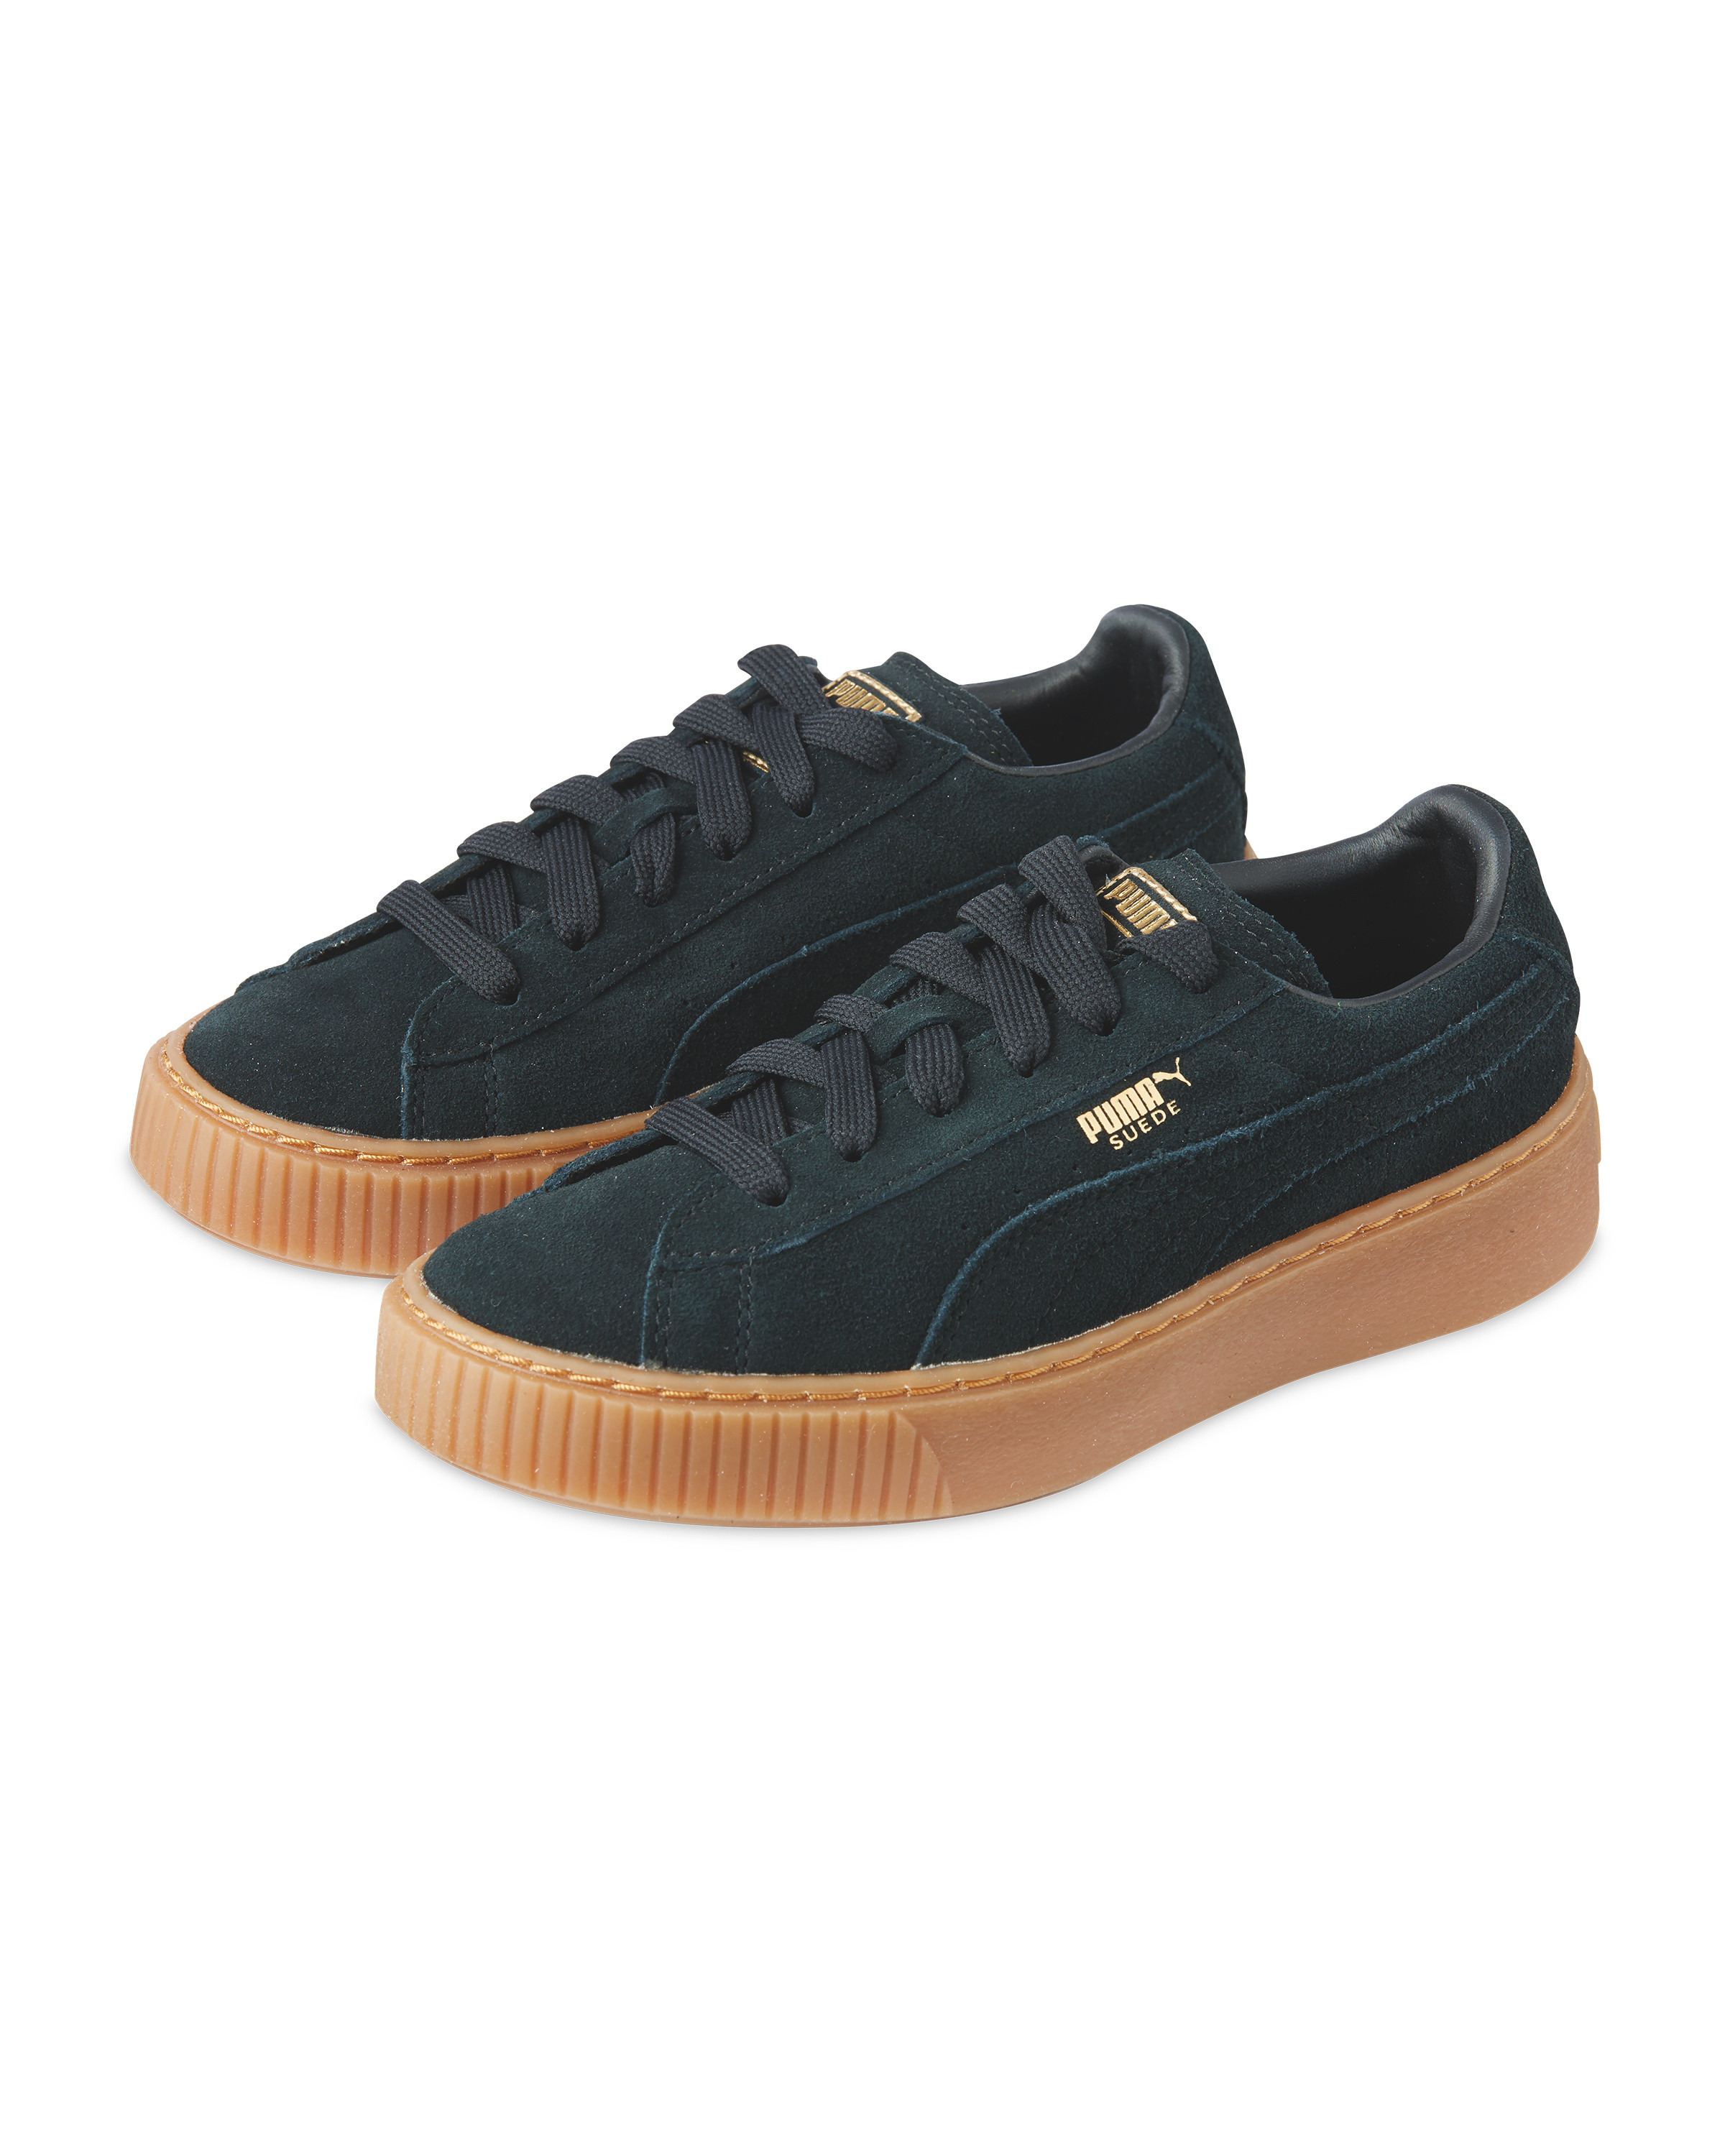 prix le plus bas 5be39 e66a9 Kids' Puma Suede Platform Trainer